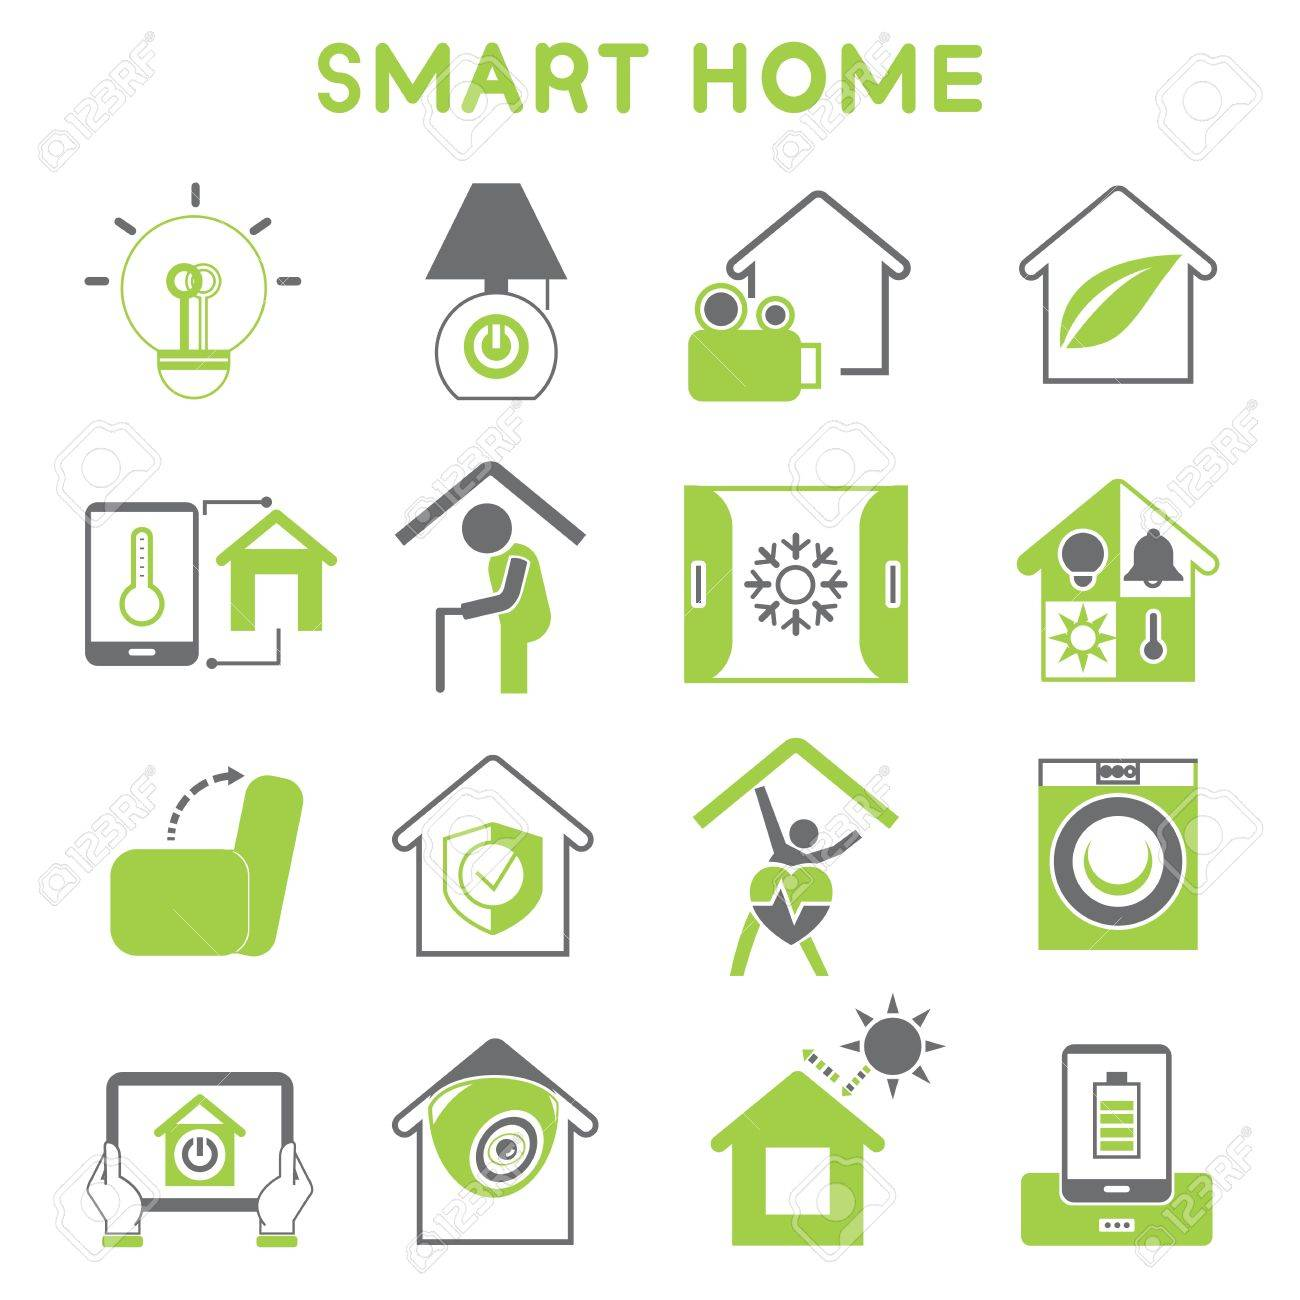 Smart Home Icons Green Color Design Royalty Free Cliparts Vectors